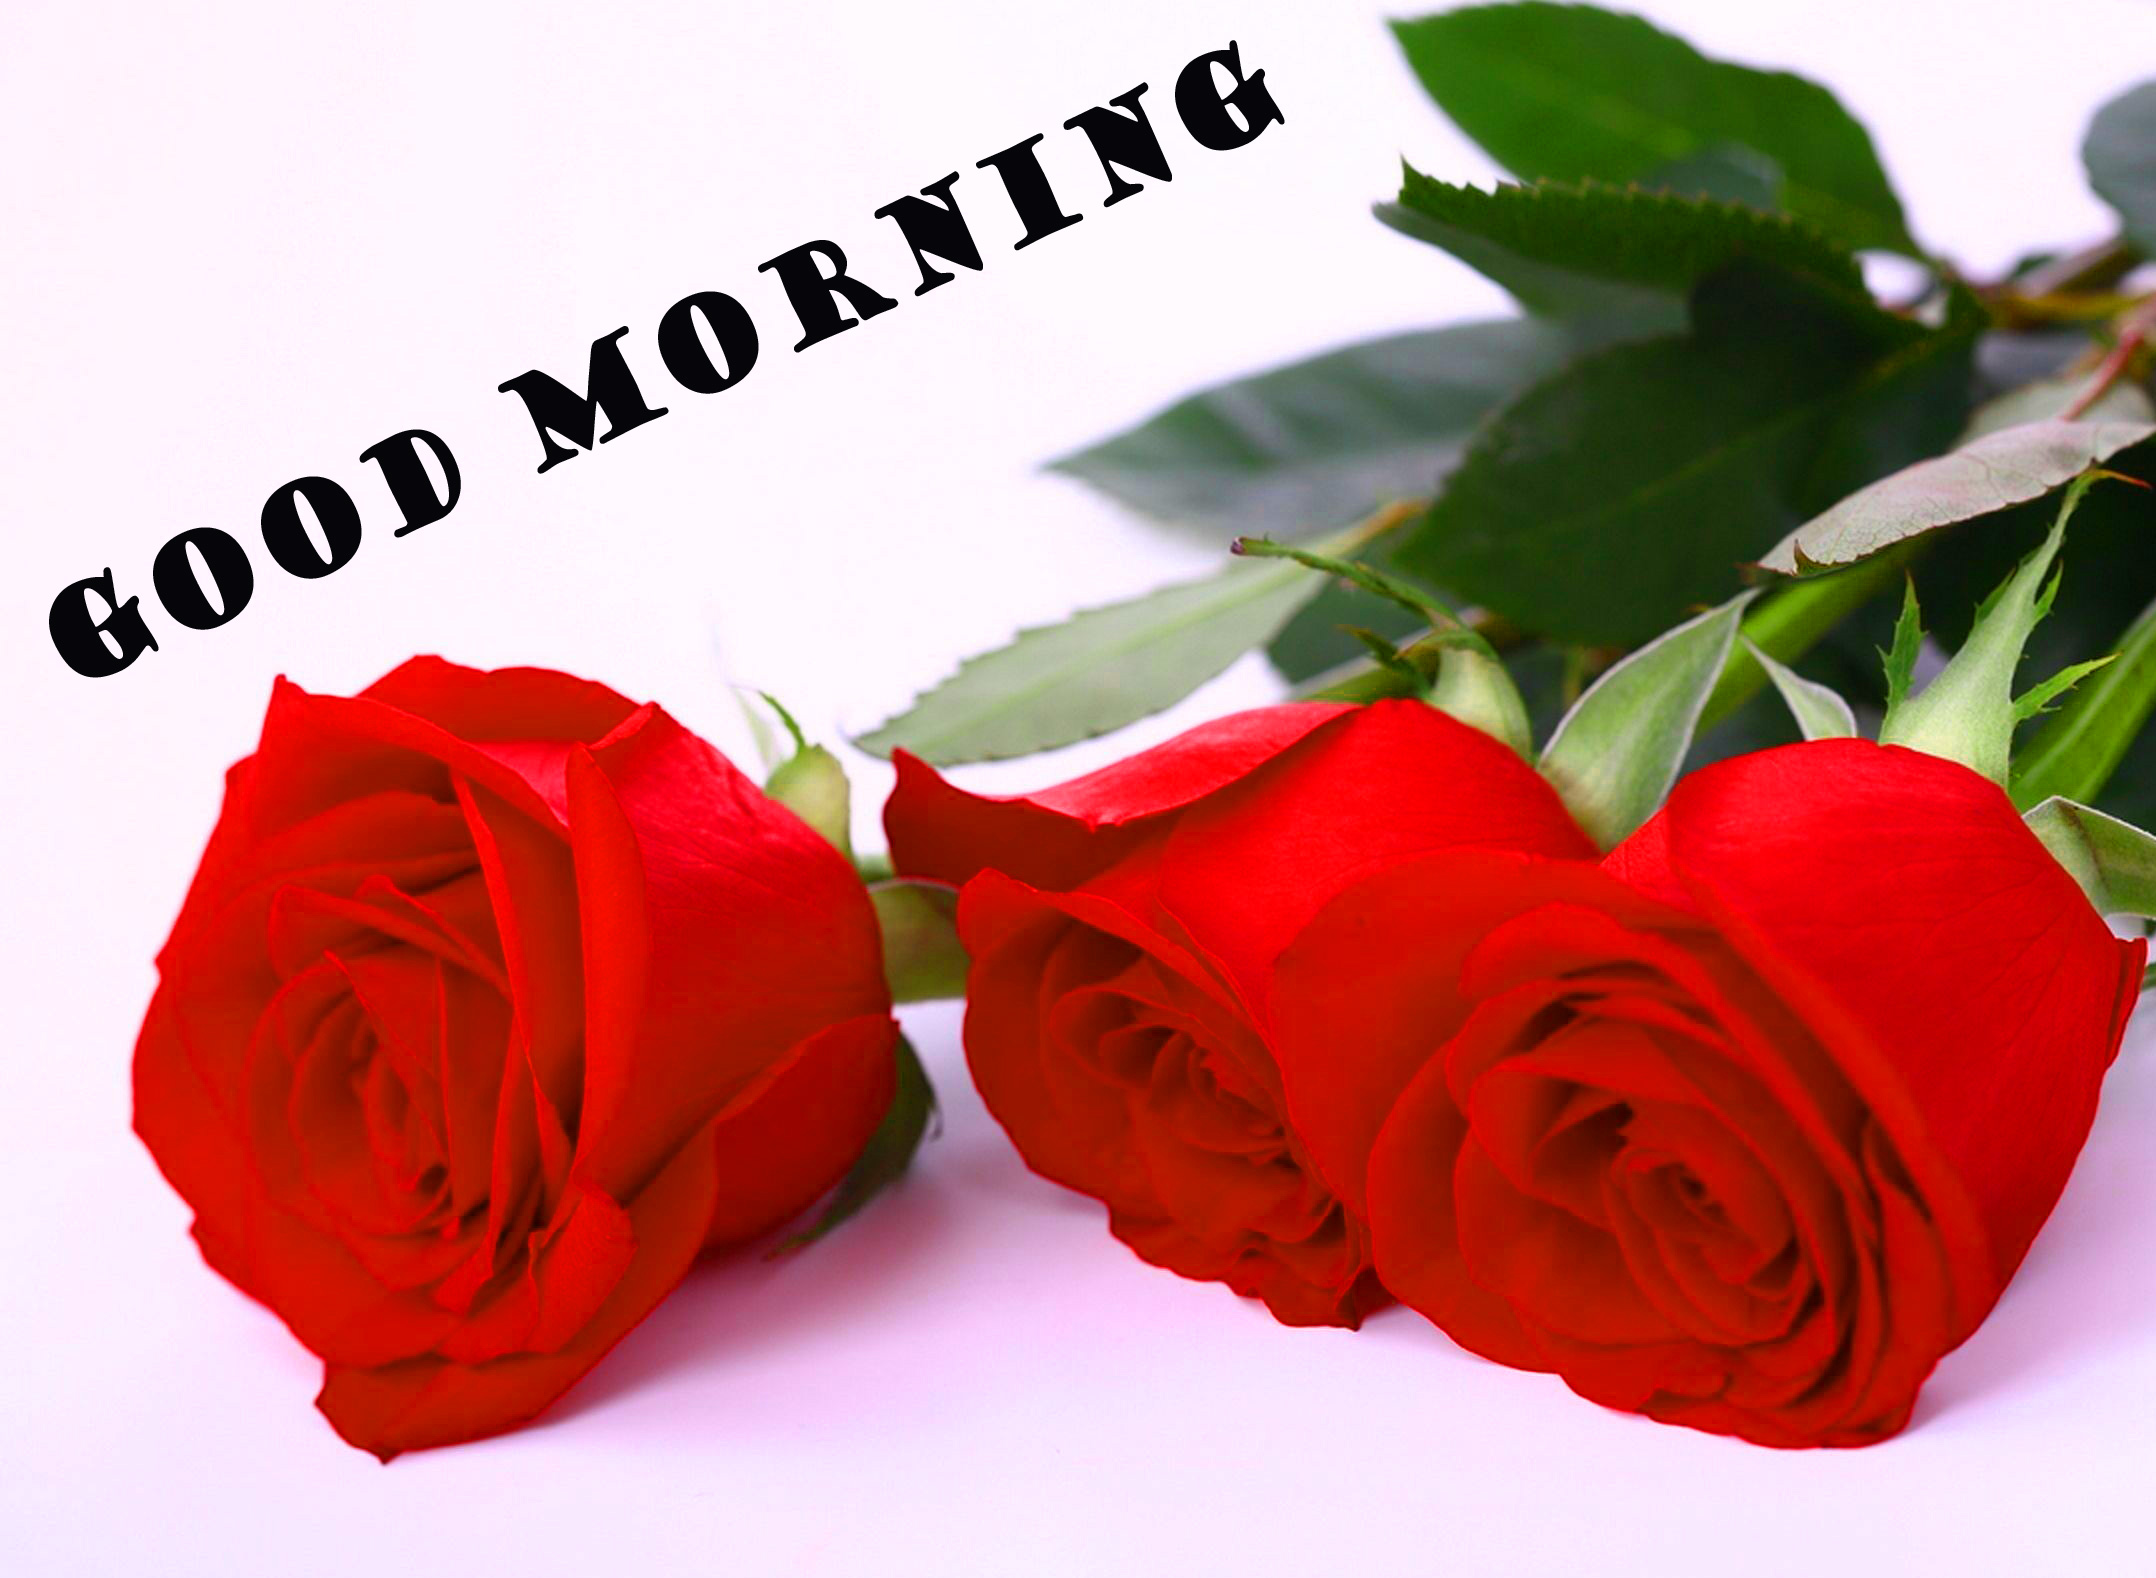 Good Morning Red Rose Wallpaper Pictures Images HD